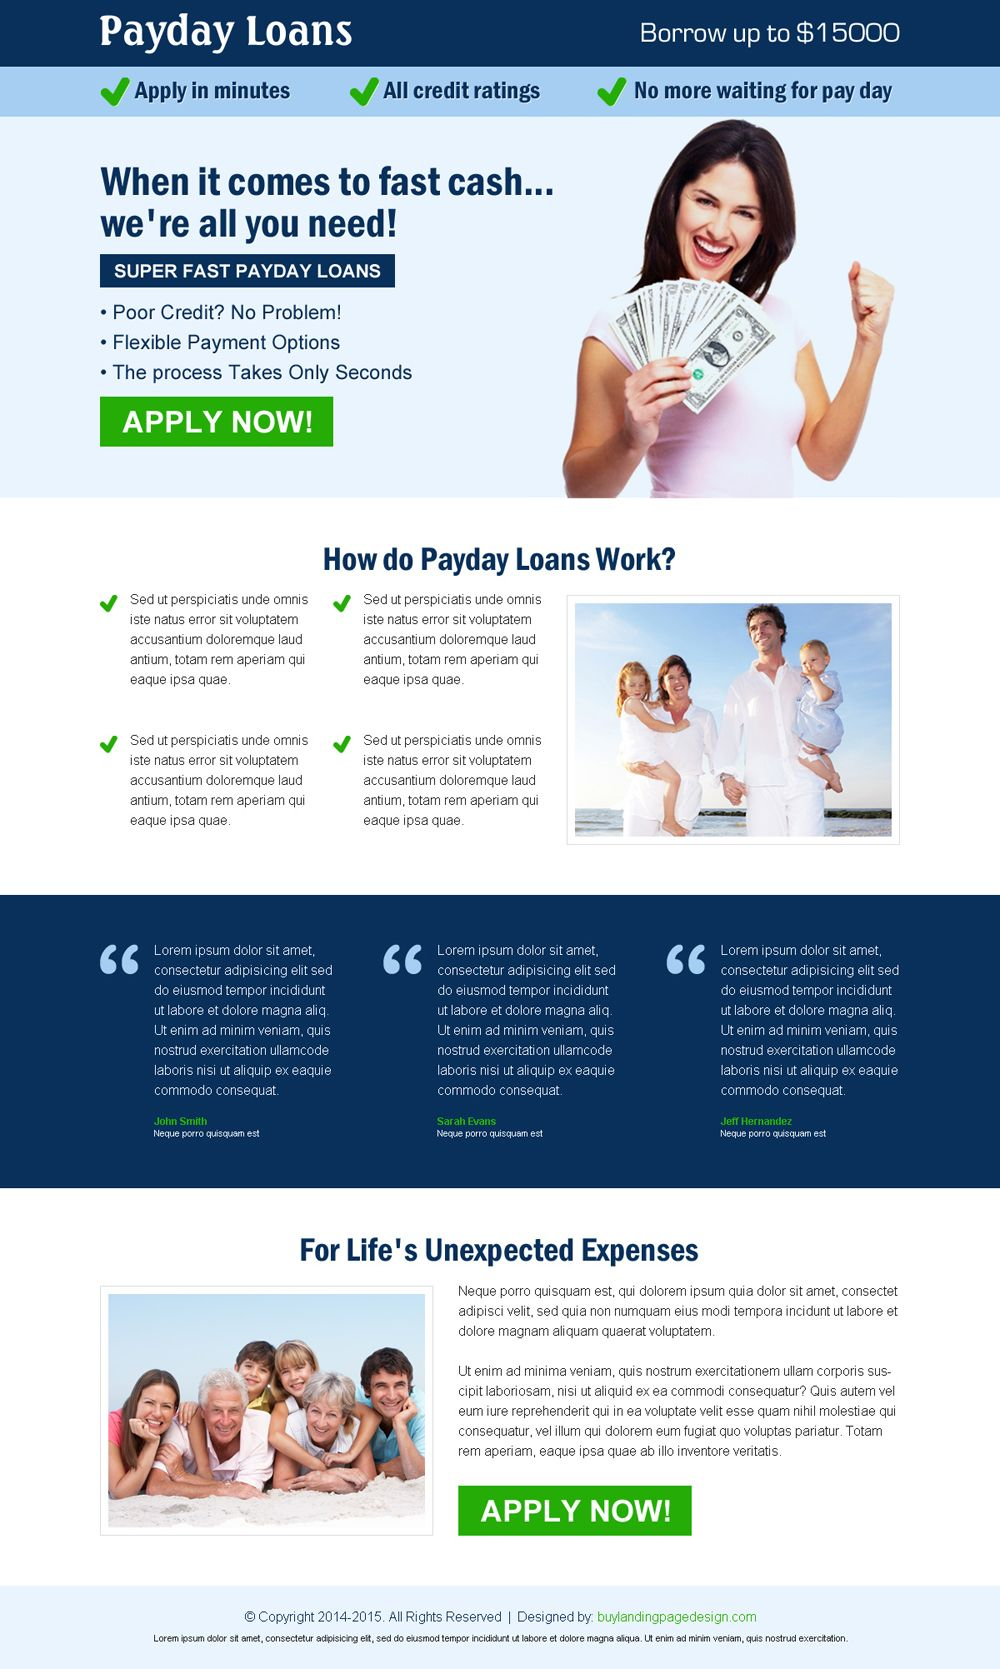 Super Fast Payday Loan Ly Now Call To Action Landing Page Design Template